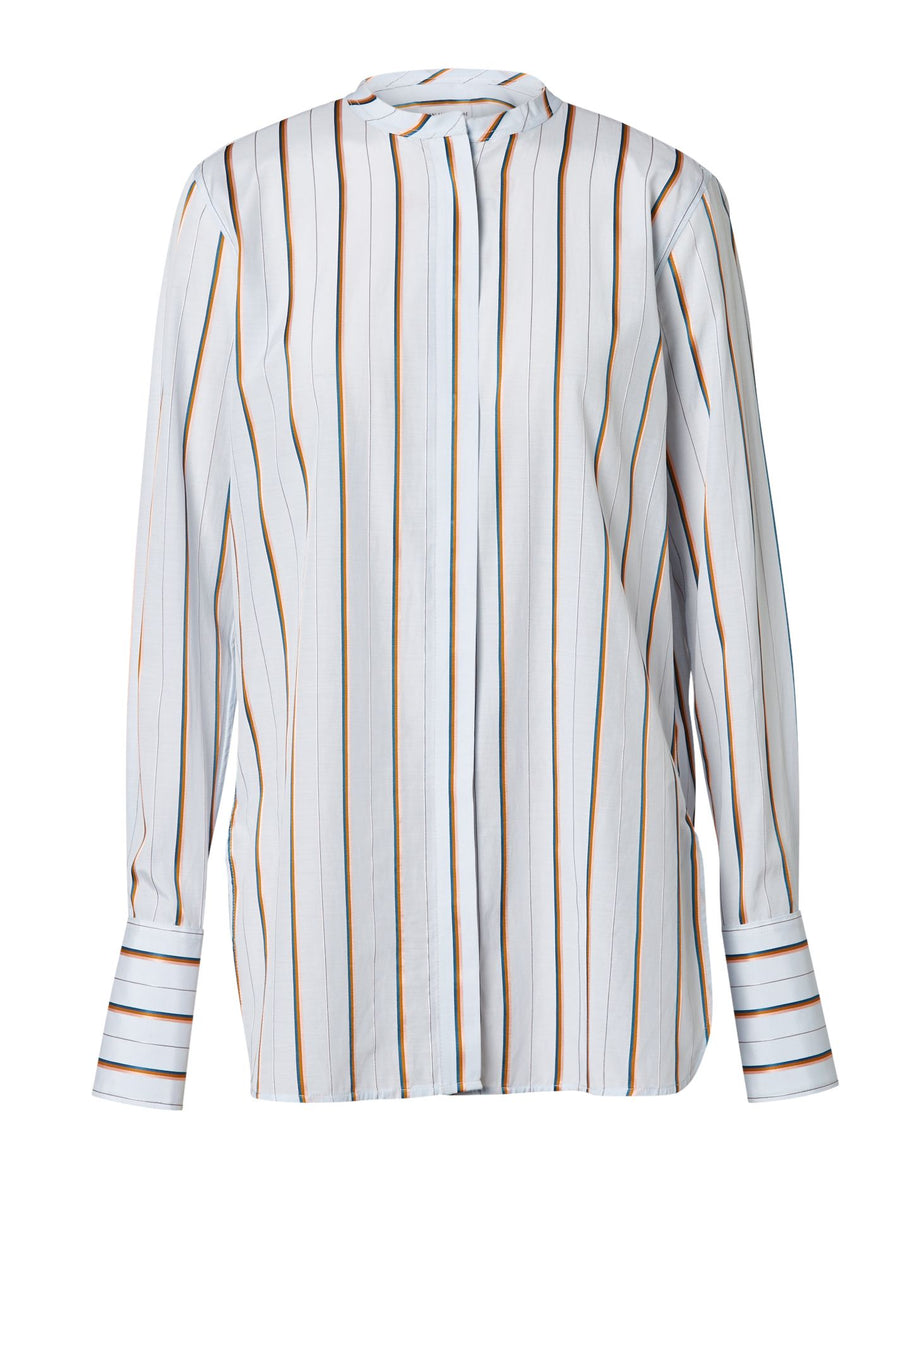 STRIPE SHIRT PALE BLUE, Long sleeves; buttons cuffs